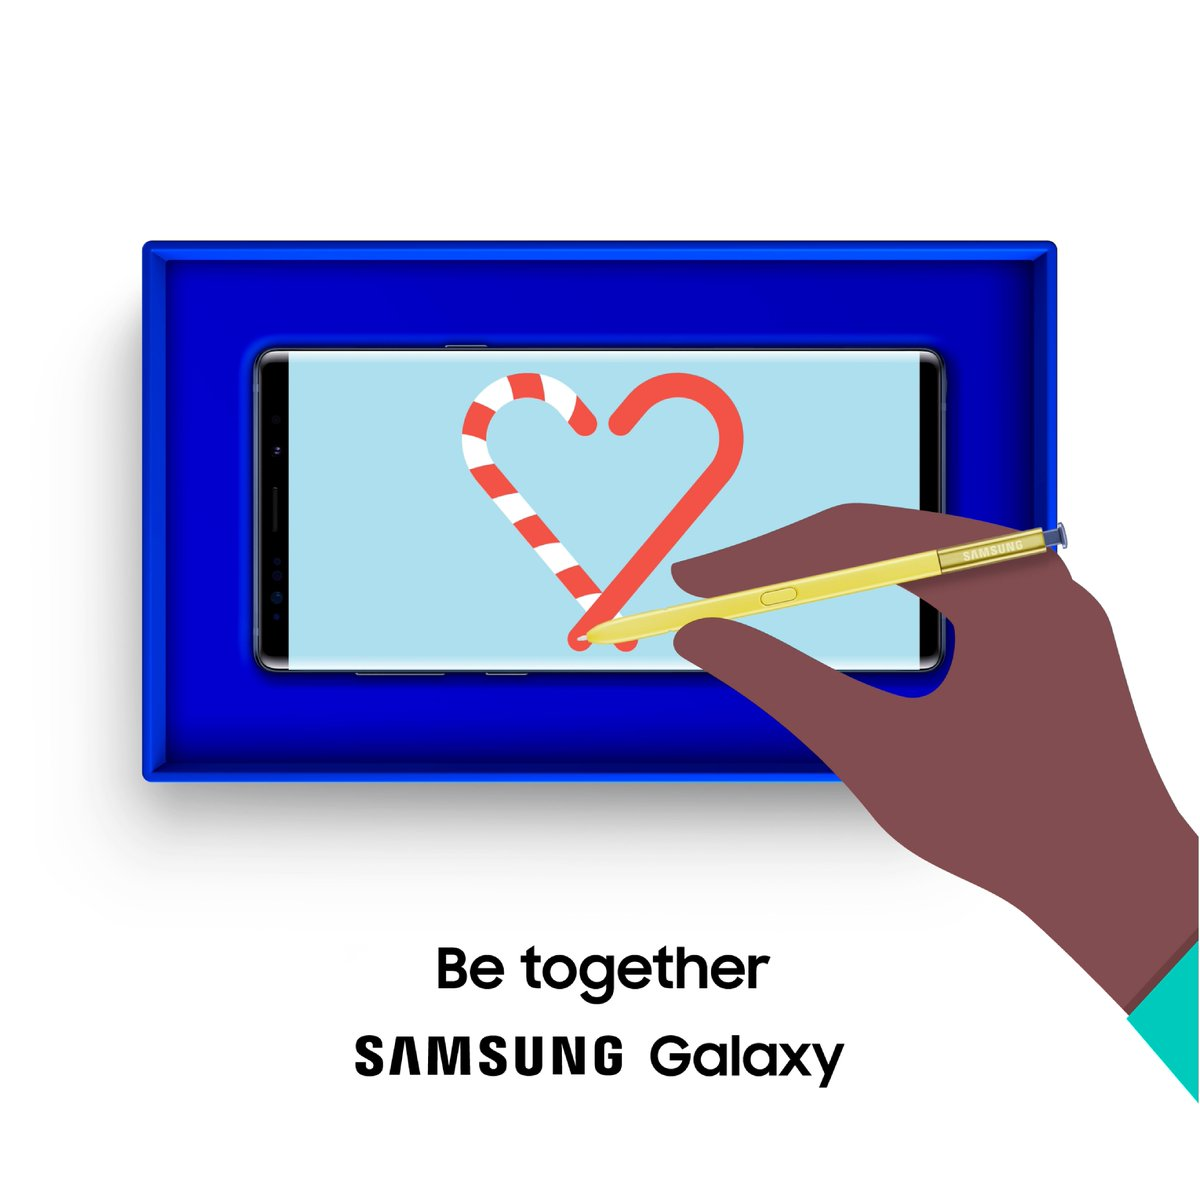 The all-day gift for all-year friends and family. Be together with #GalaxyNote9. Learn more: http://smsng.co/Holiday_kat